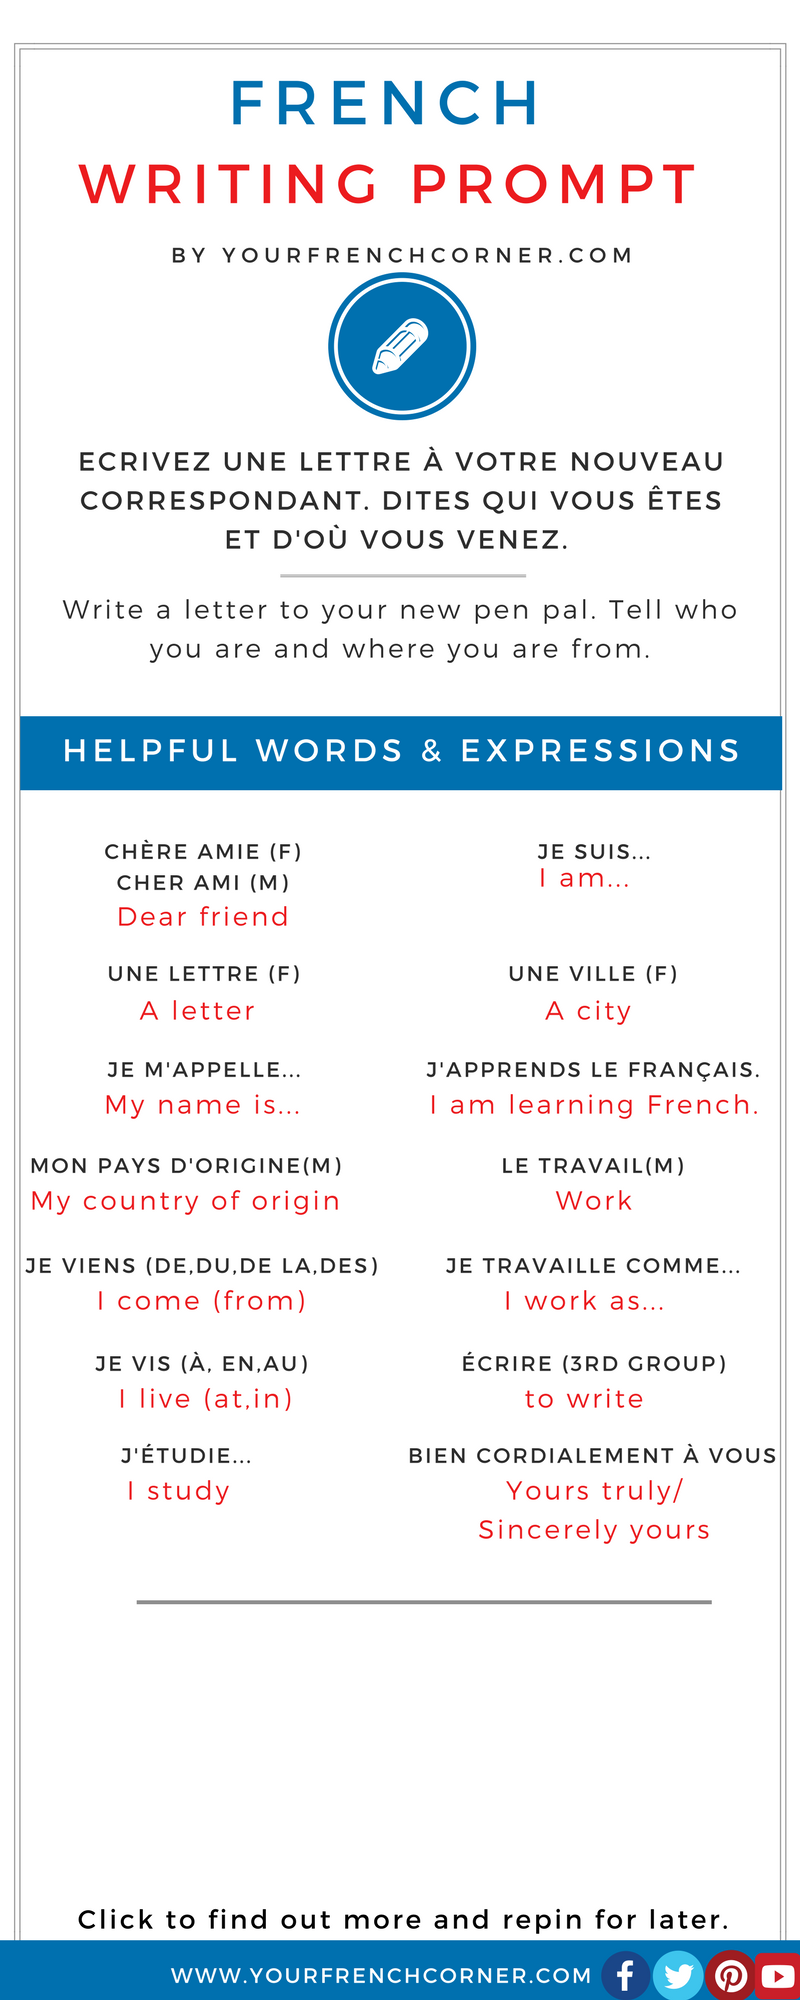 Talking About Yourself In French French Words And Expressions You Need Your French Corner